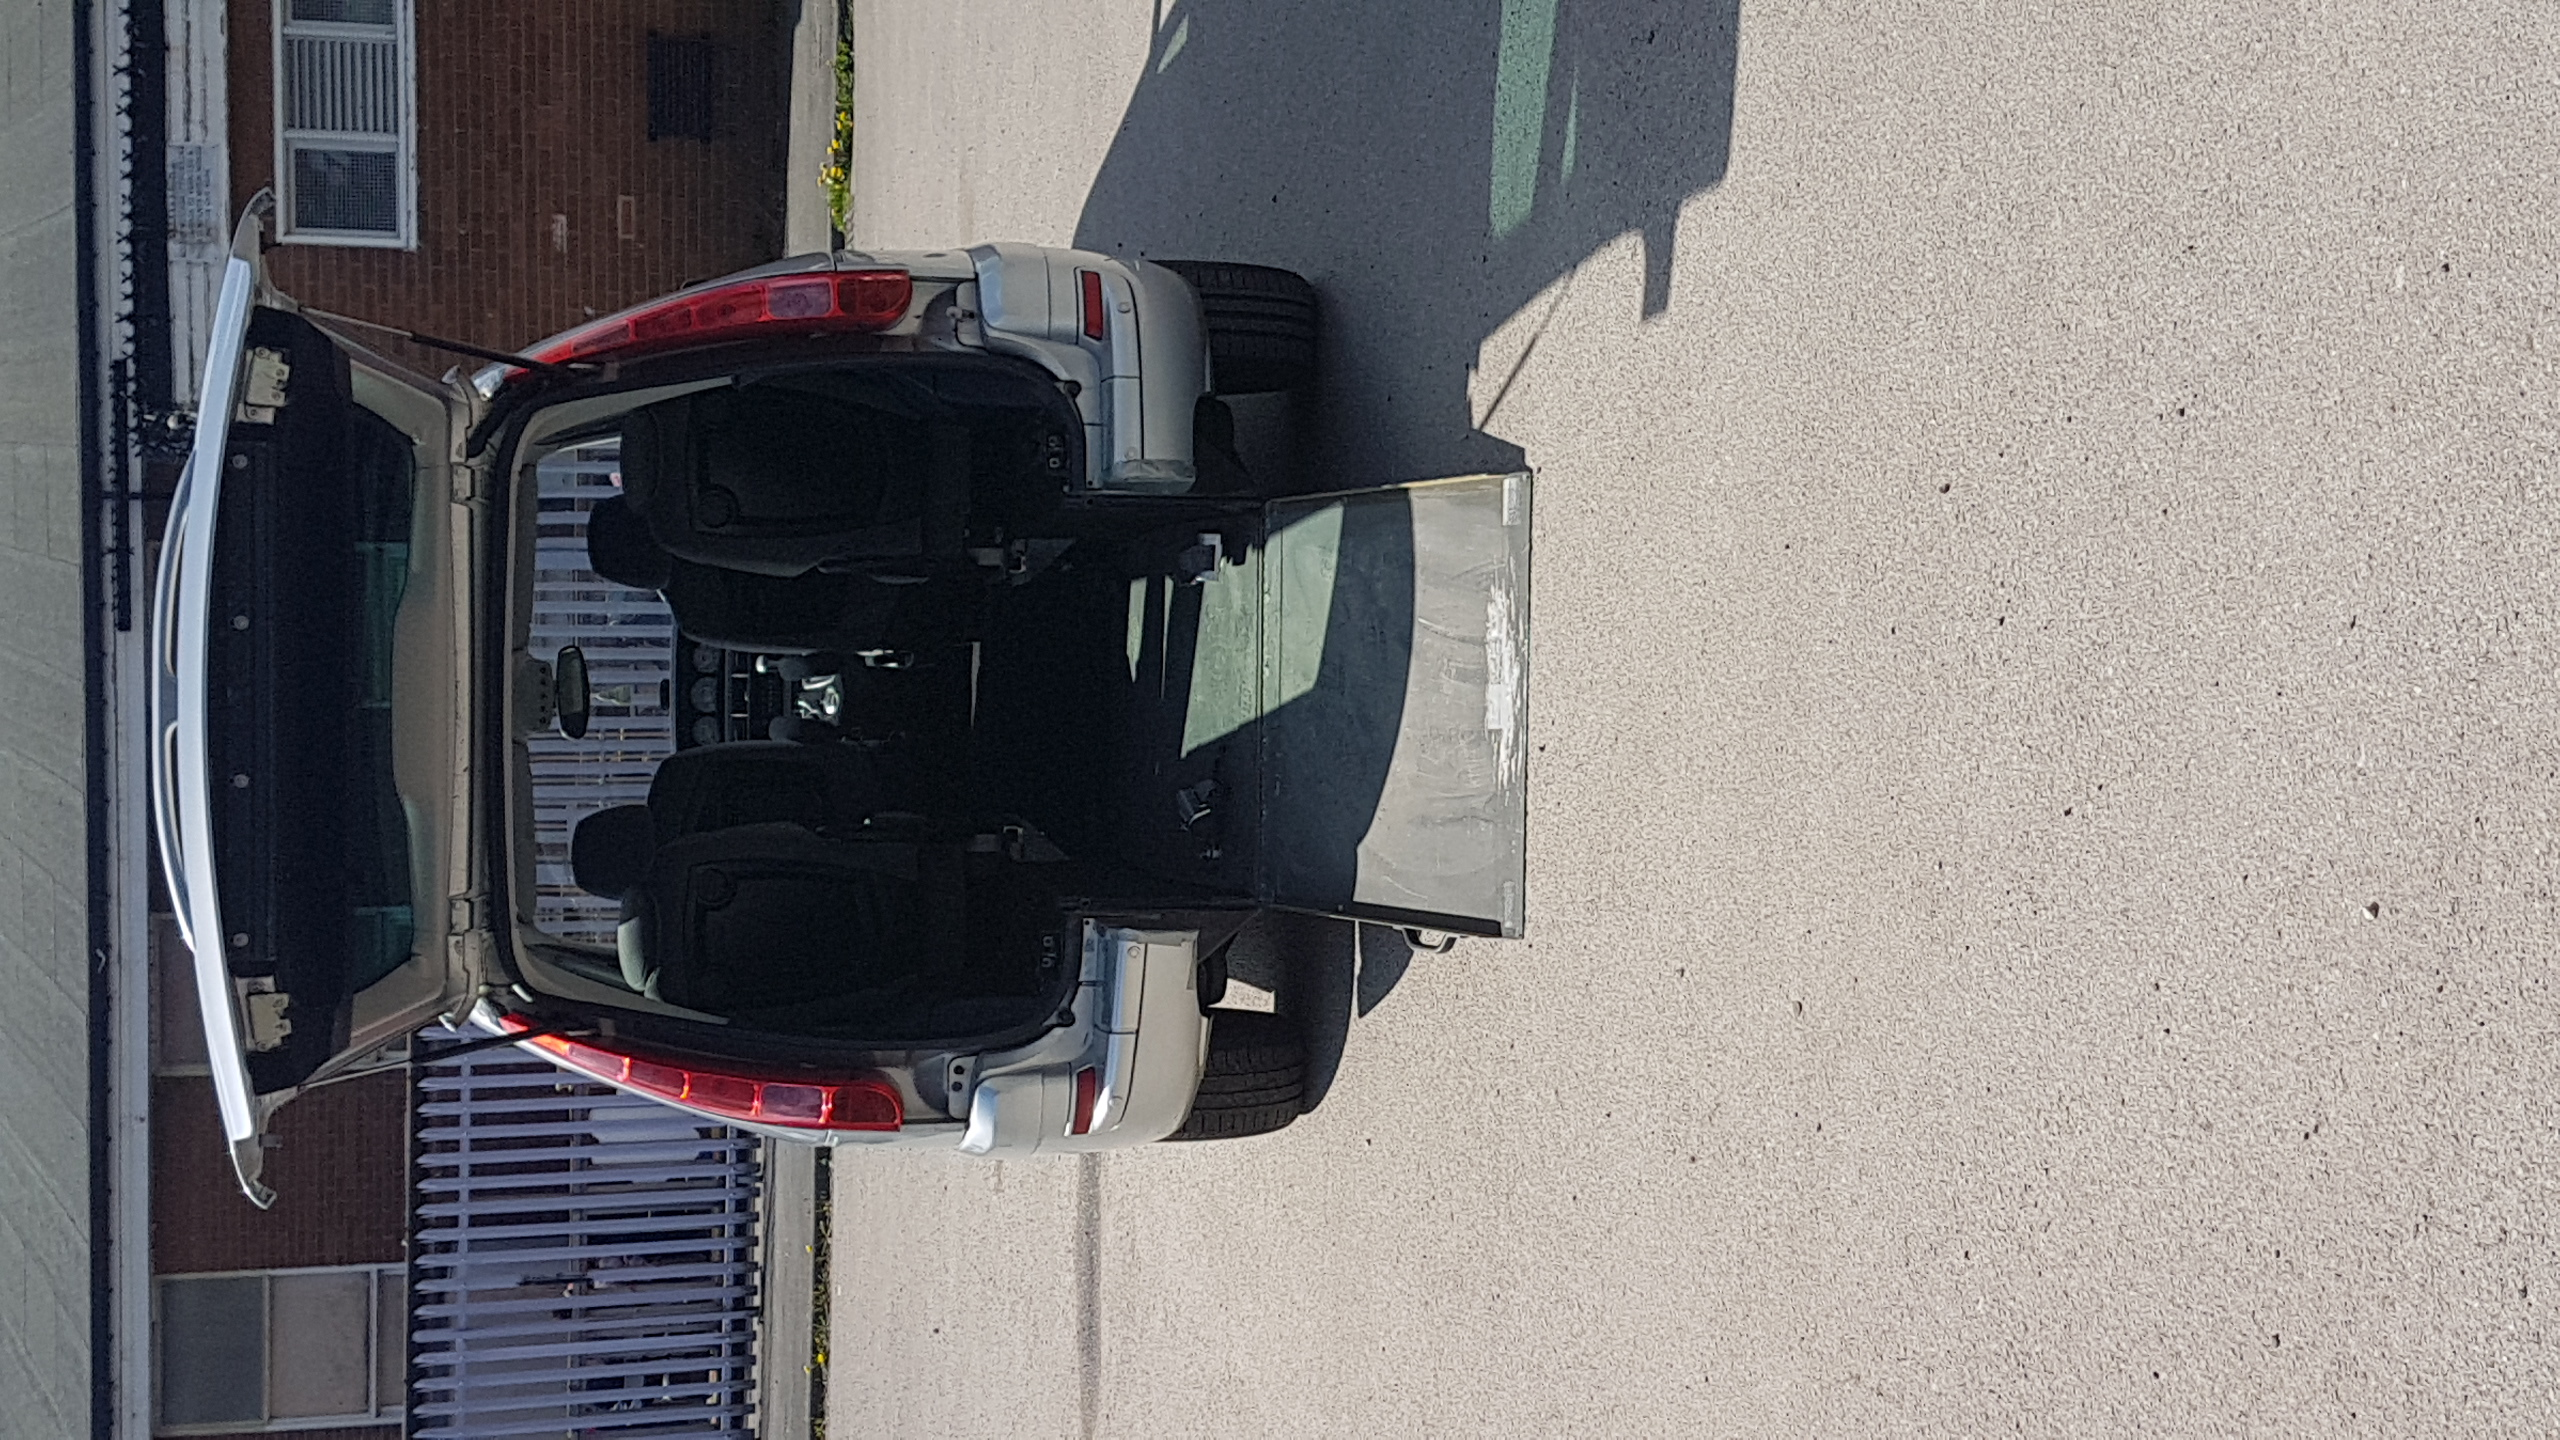 CITROEN C8 AUTOMATIC WHEELCHAIR ACCESS VEHICLE